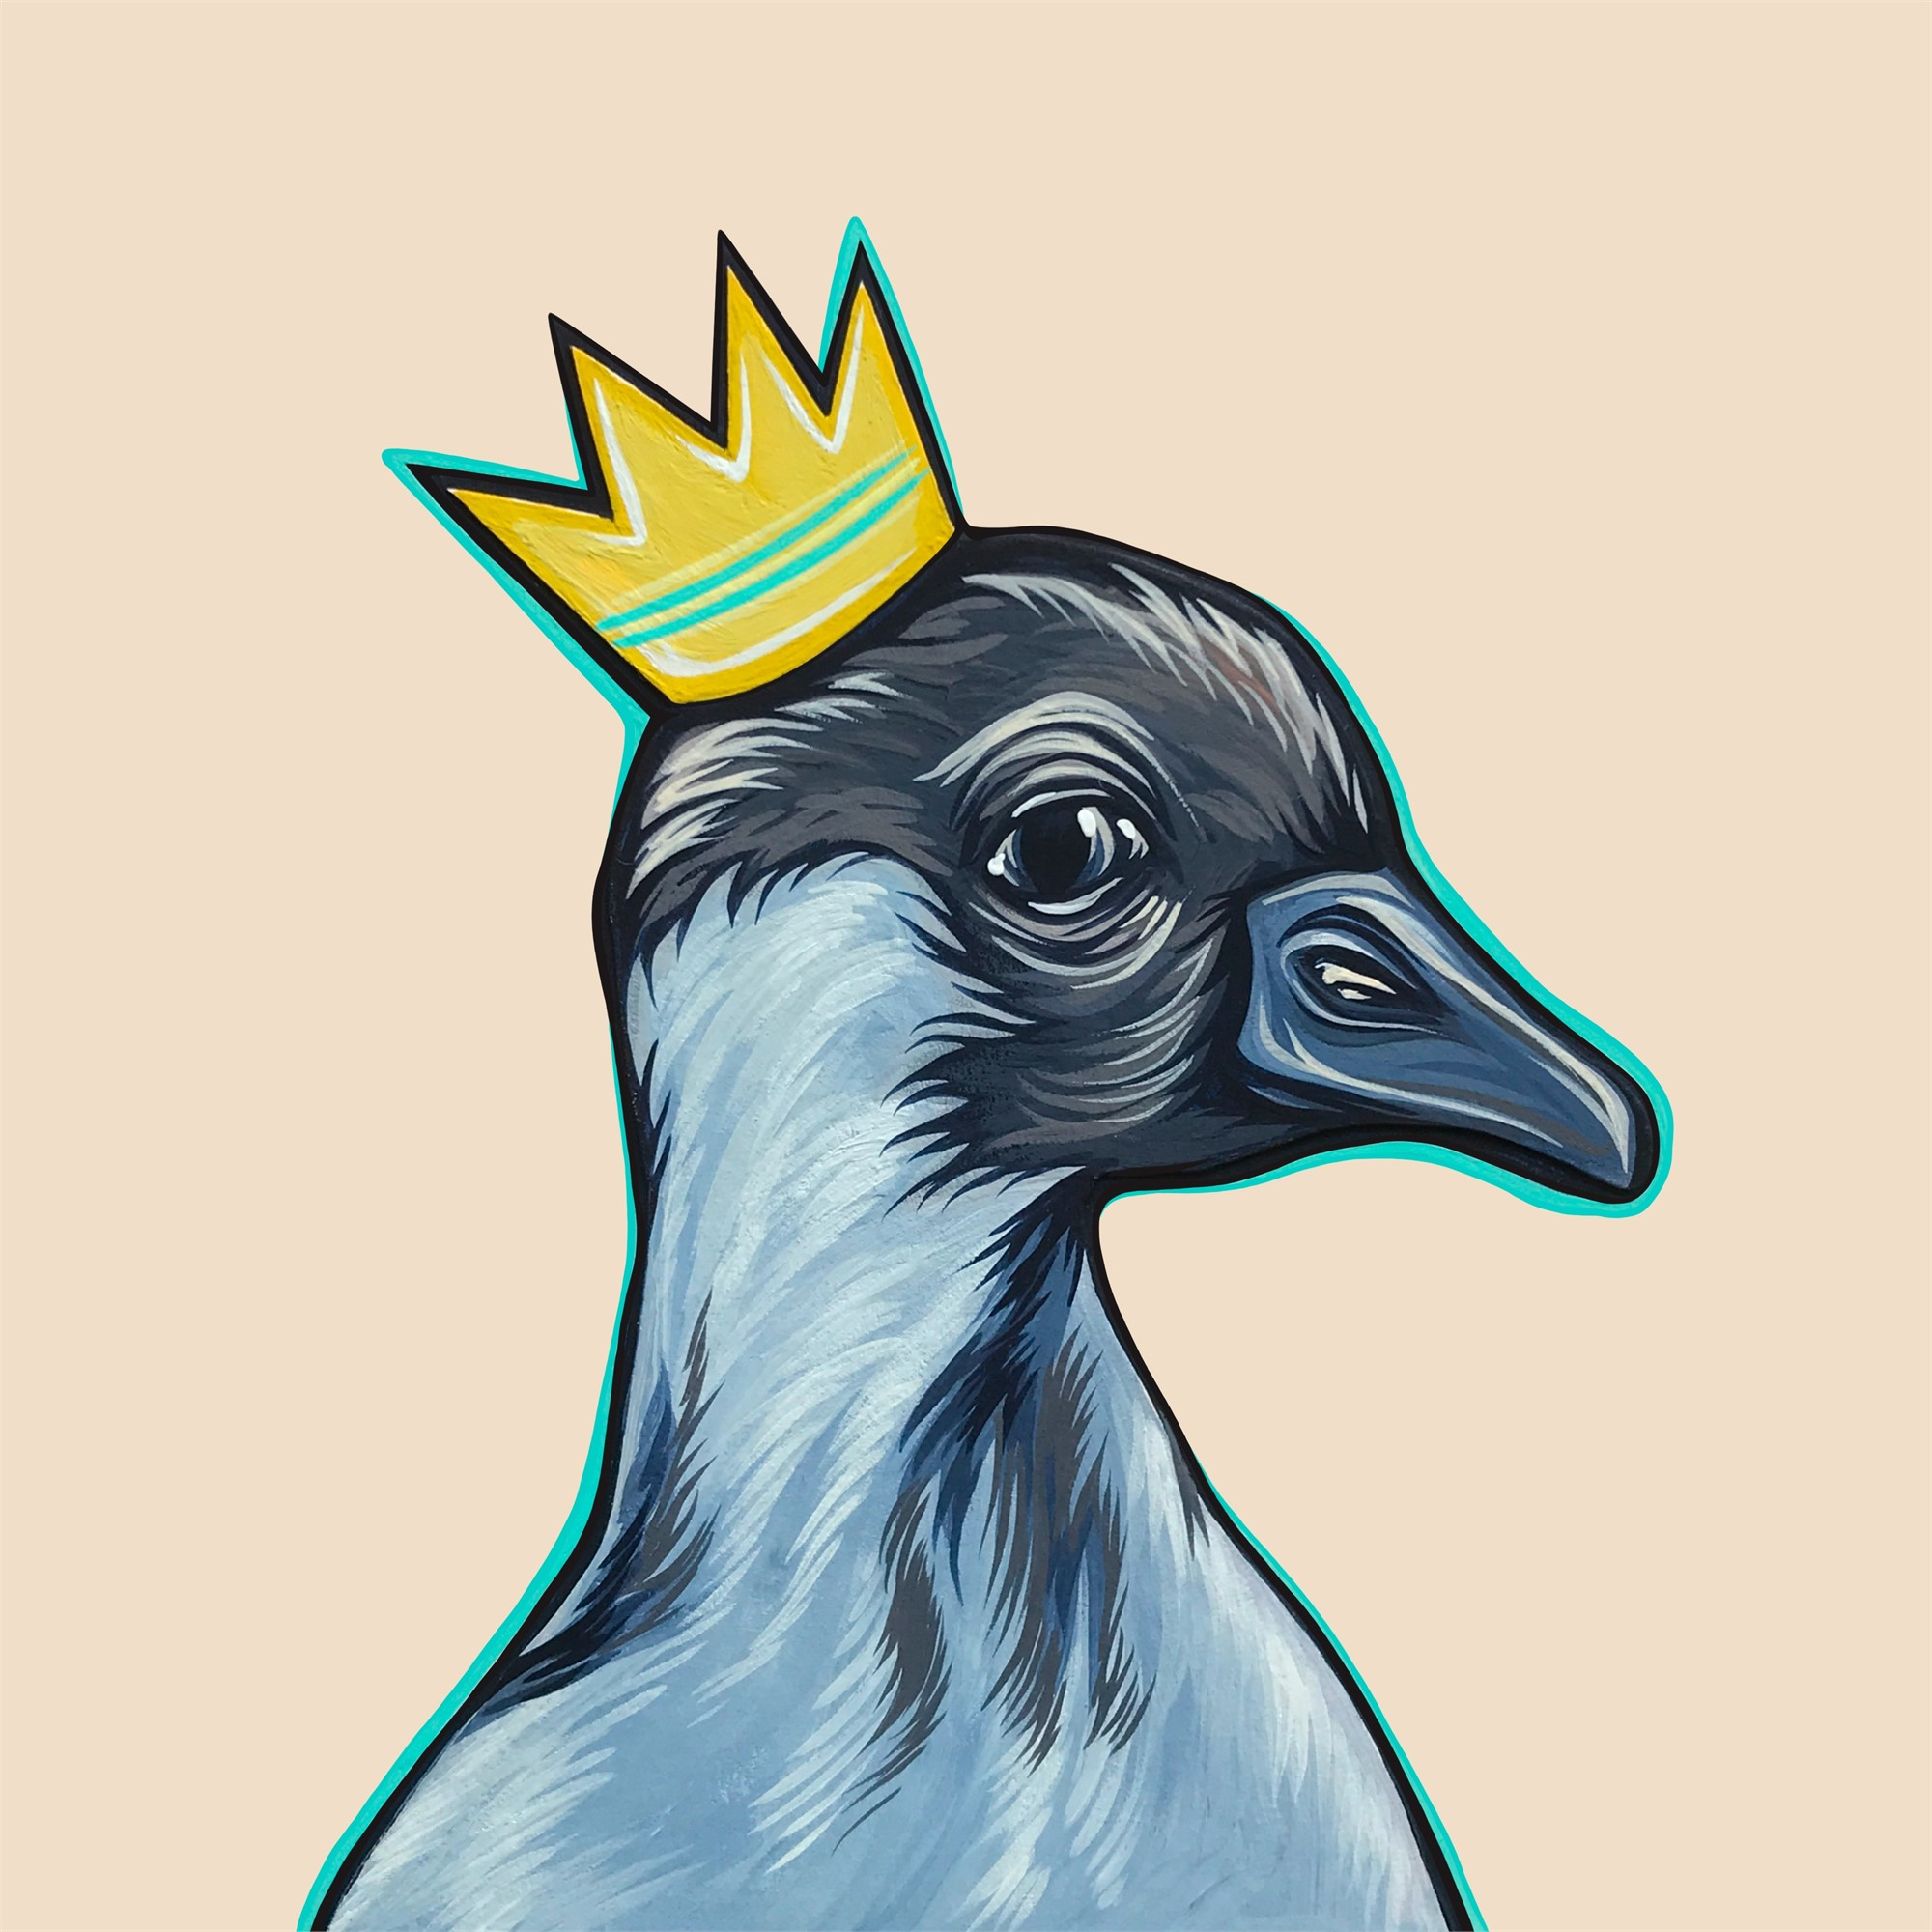 Mighty Ducks Teal Crown by Kaitlin Ziesmer